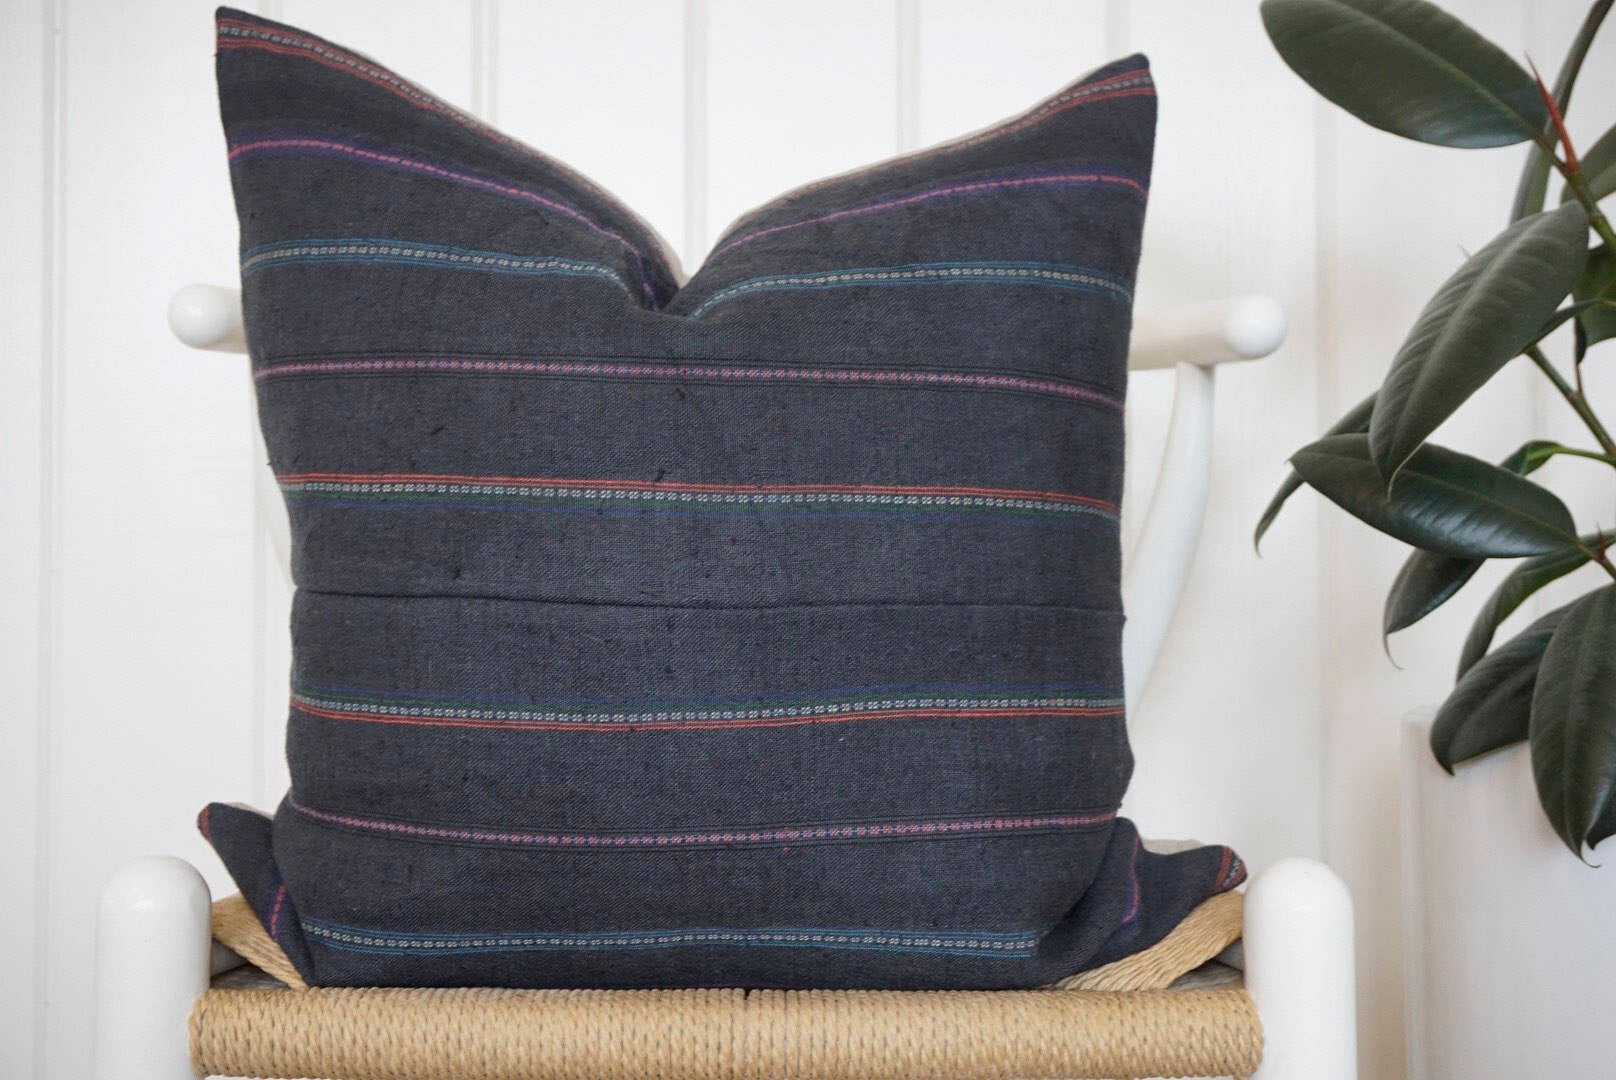 18X18 Blue Hmong Pillow Cover / Striped Navy Pillow / Coastal Farmhouse / Thailand Hemp Hmong